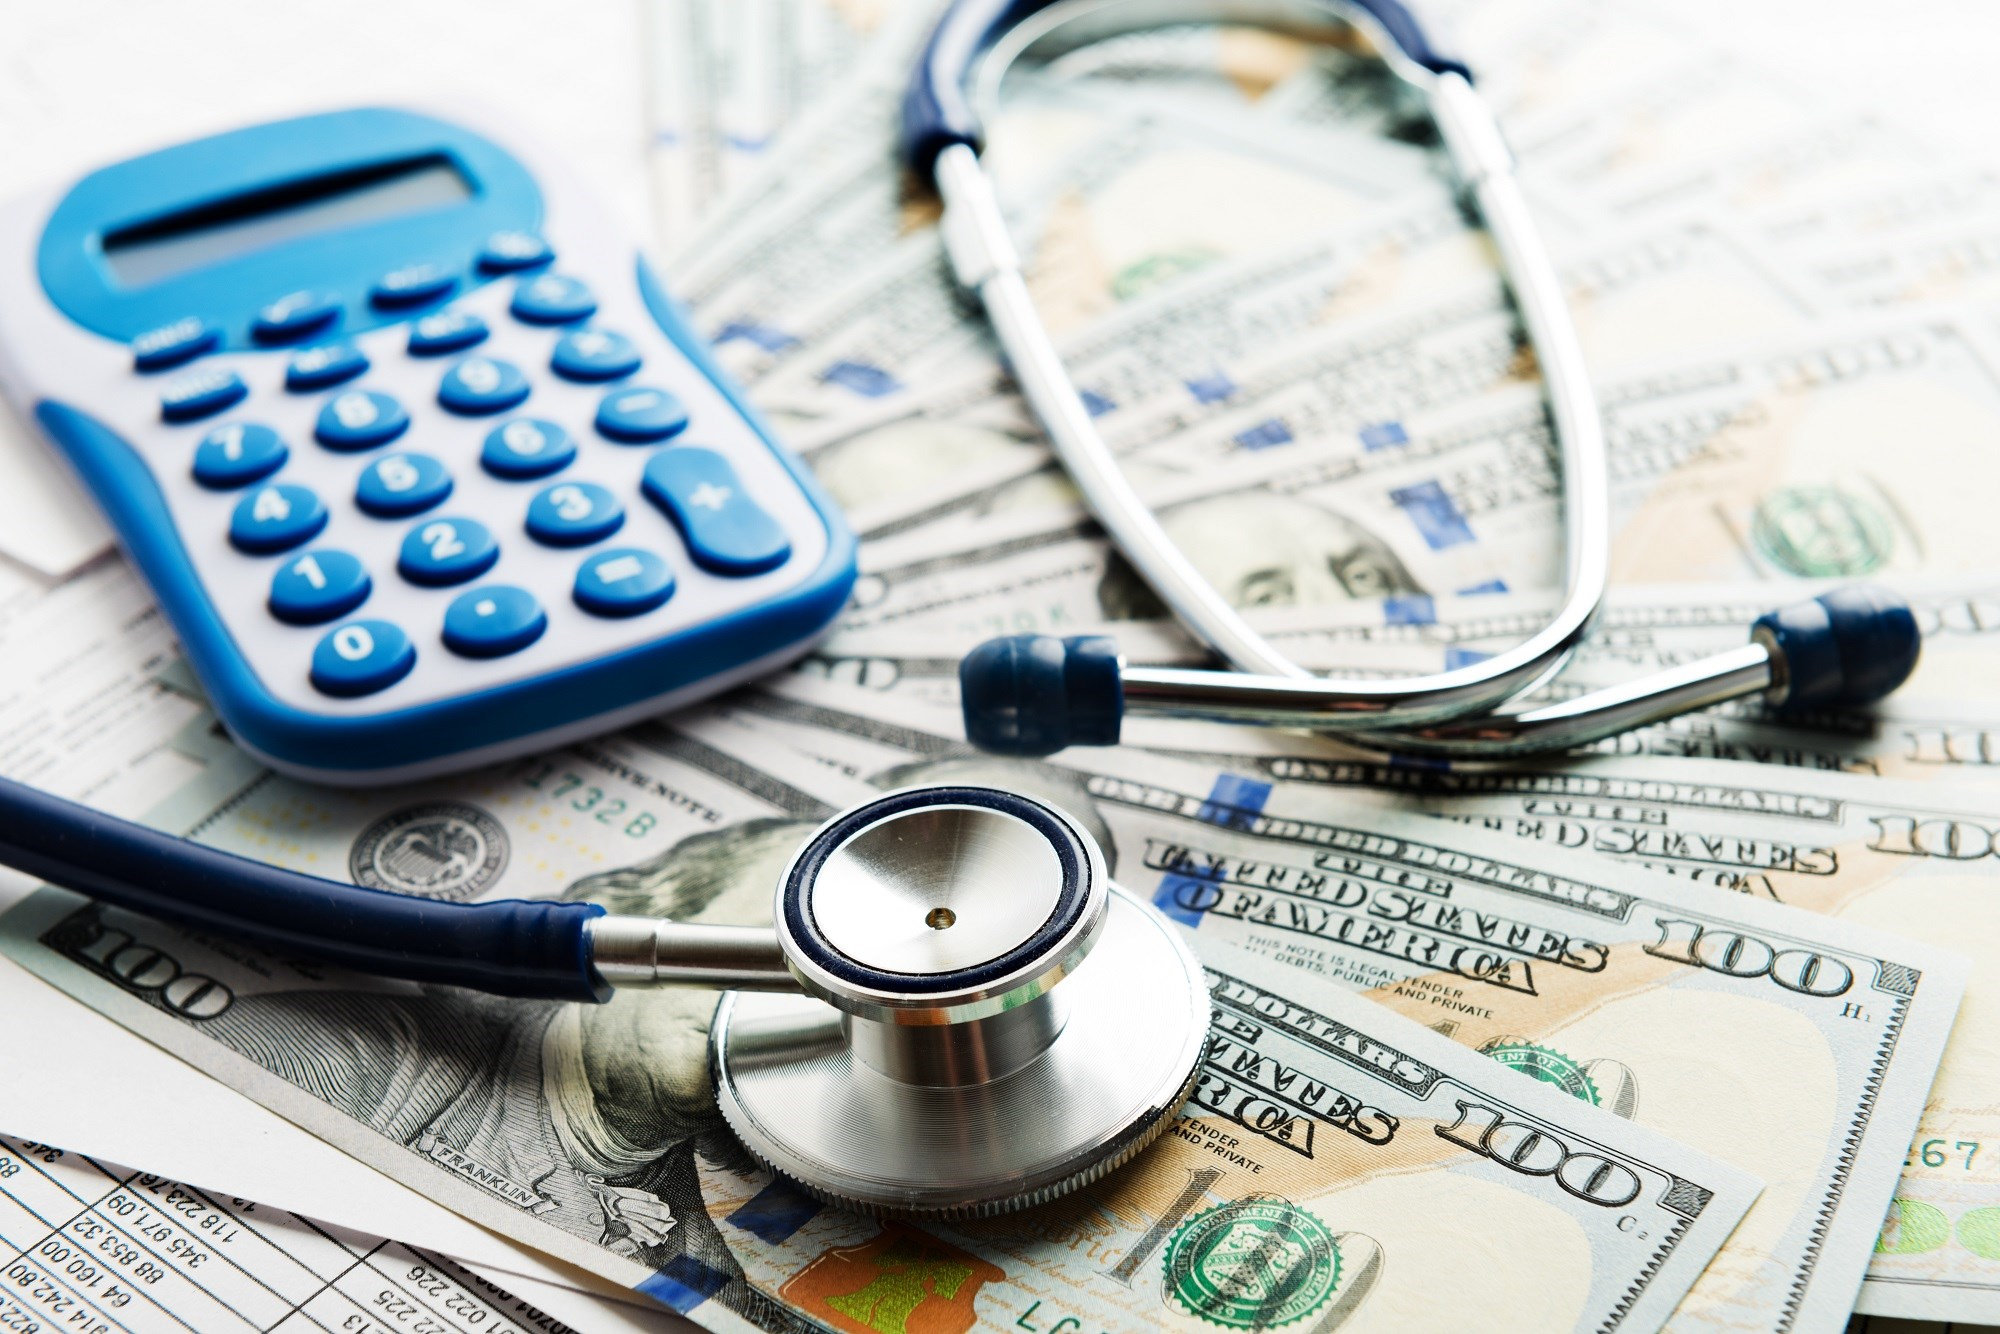 Hospital Prices Growing Faster Than Physician Prices